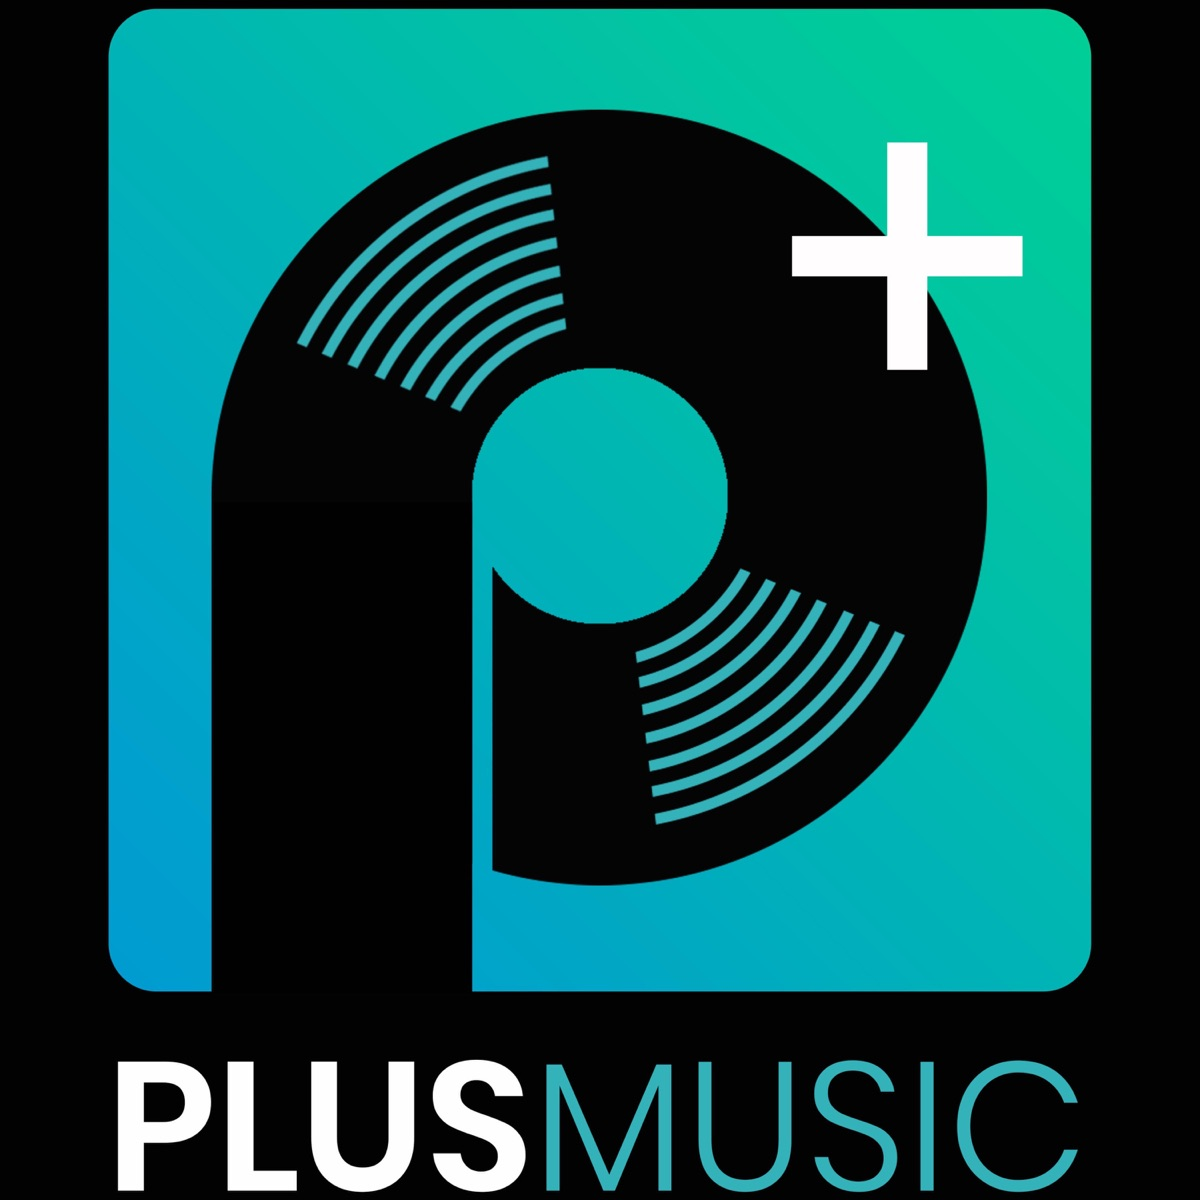 PlusMusic Podcast - Conversations with musicians, for musicians